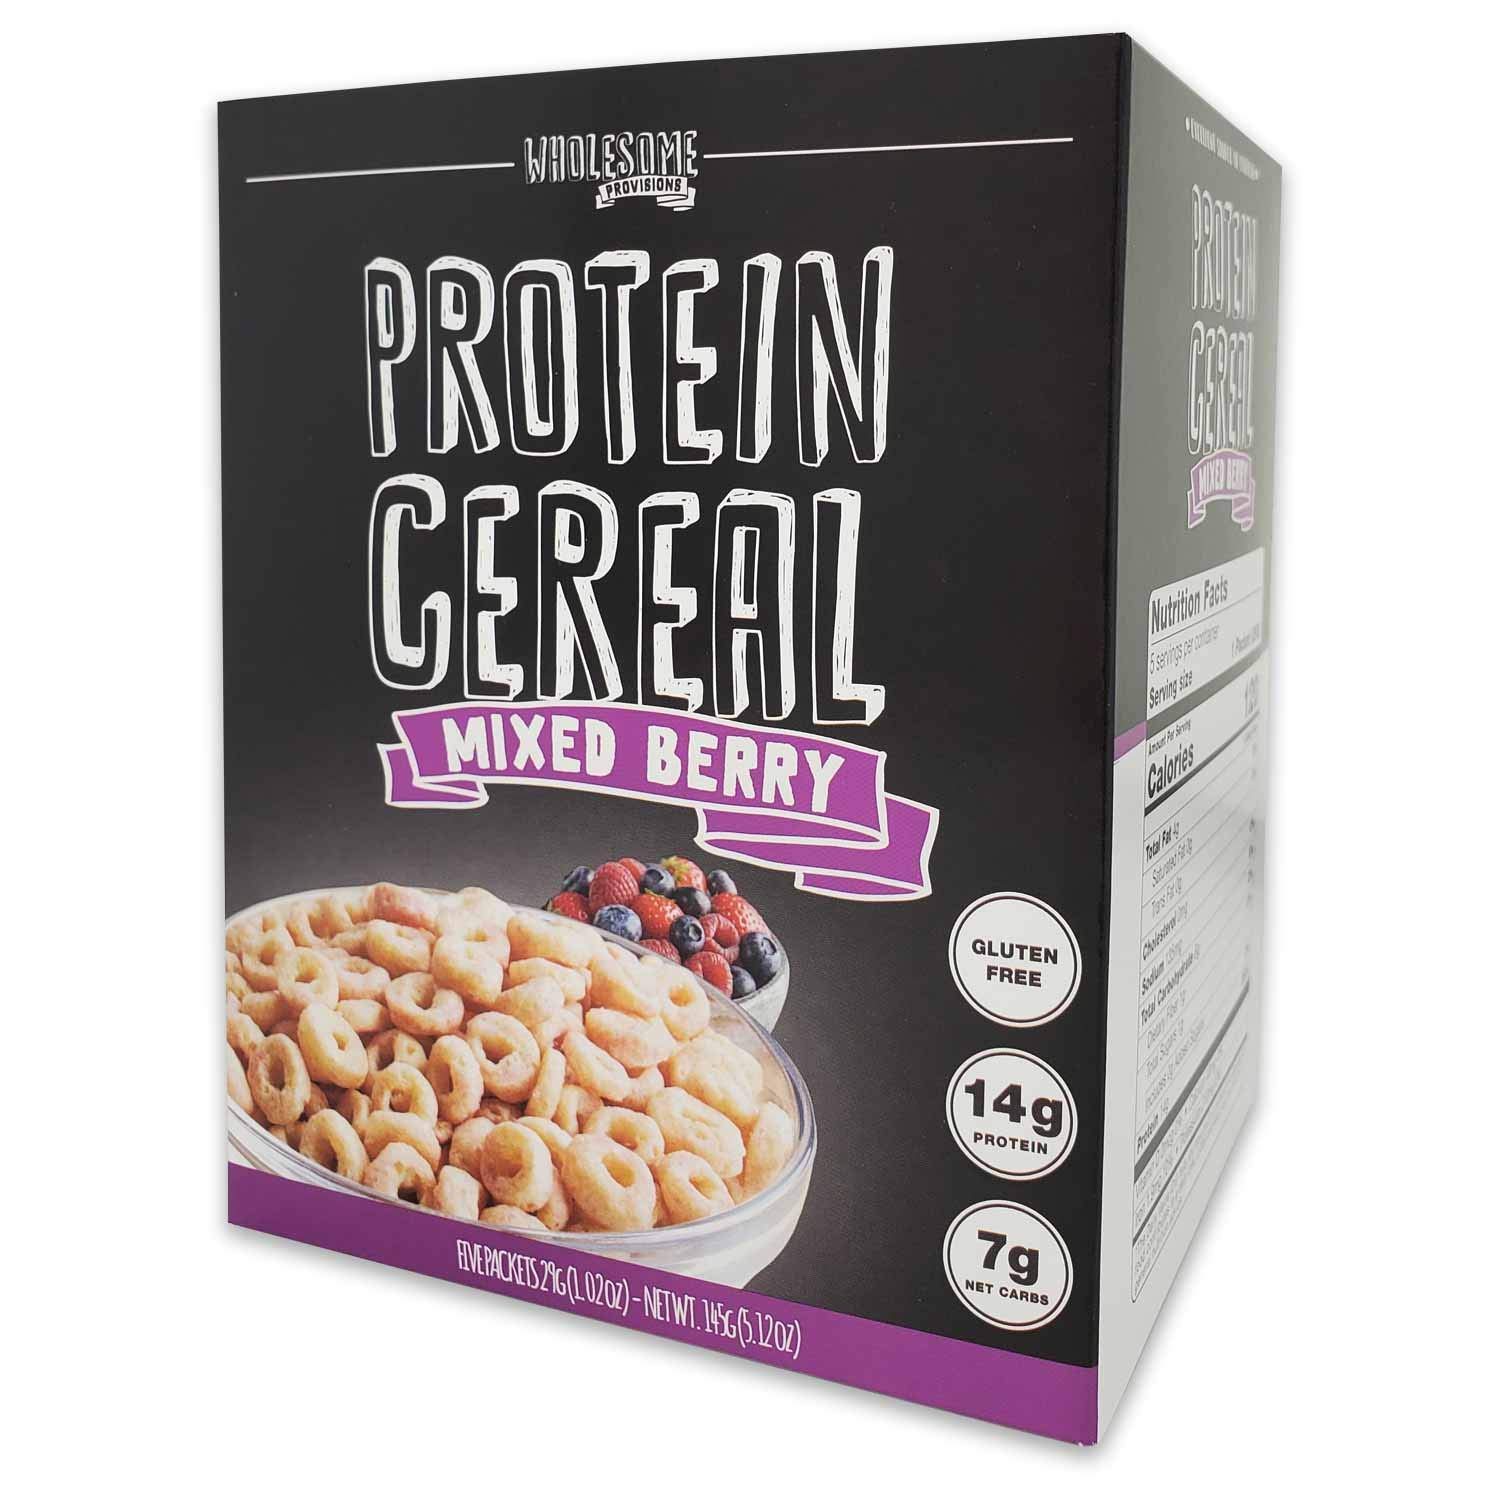 Protein Cereal, Low Carb Cereal, High Protein Cereal, 15g